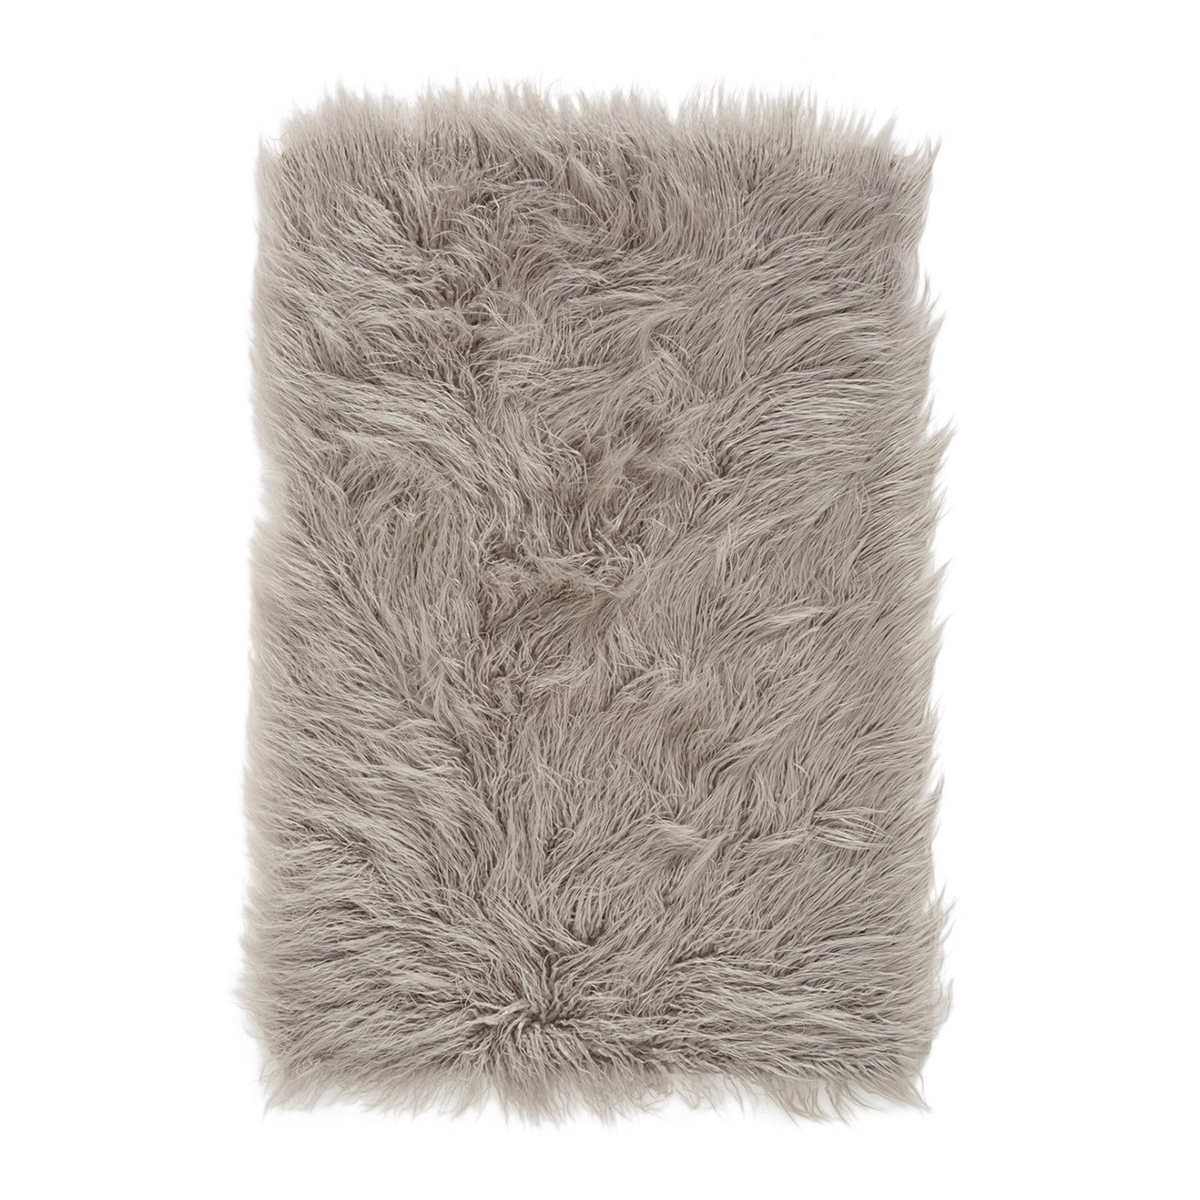 Gray plush faux fur bathroom rug from Nordstrom photo